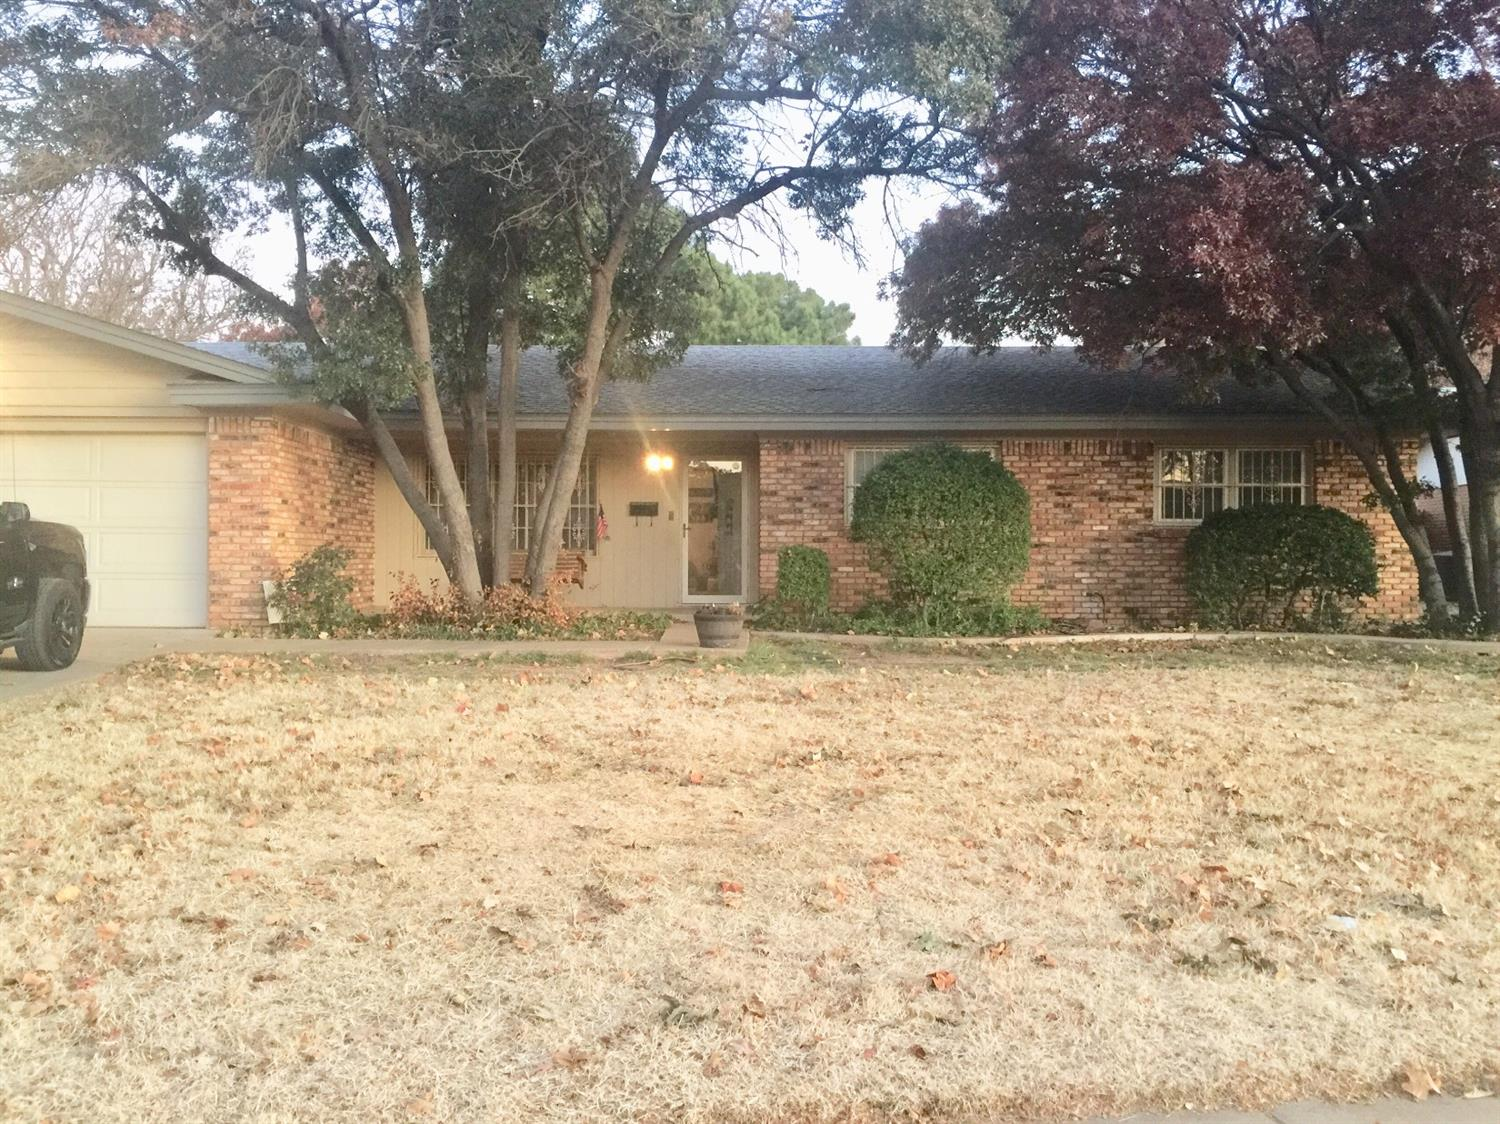 4606 28th Street, Lubbock in Lubbock County, TX 79410 Home for Sale